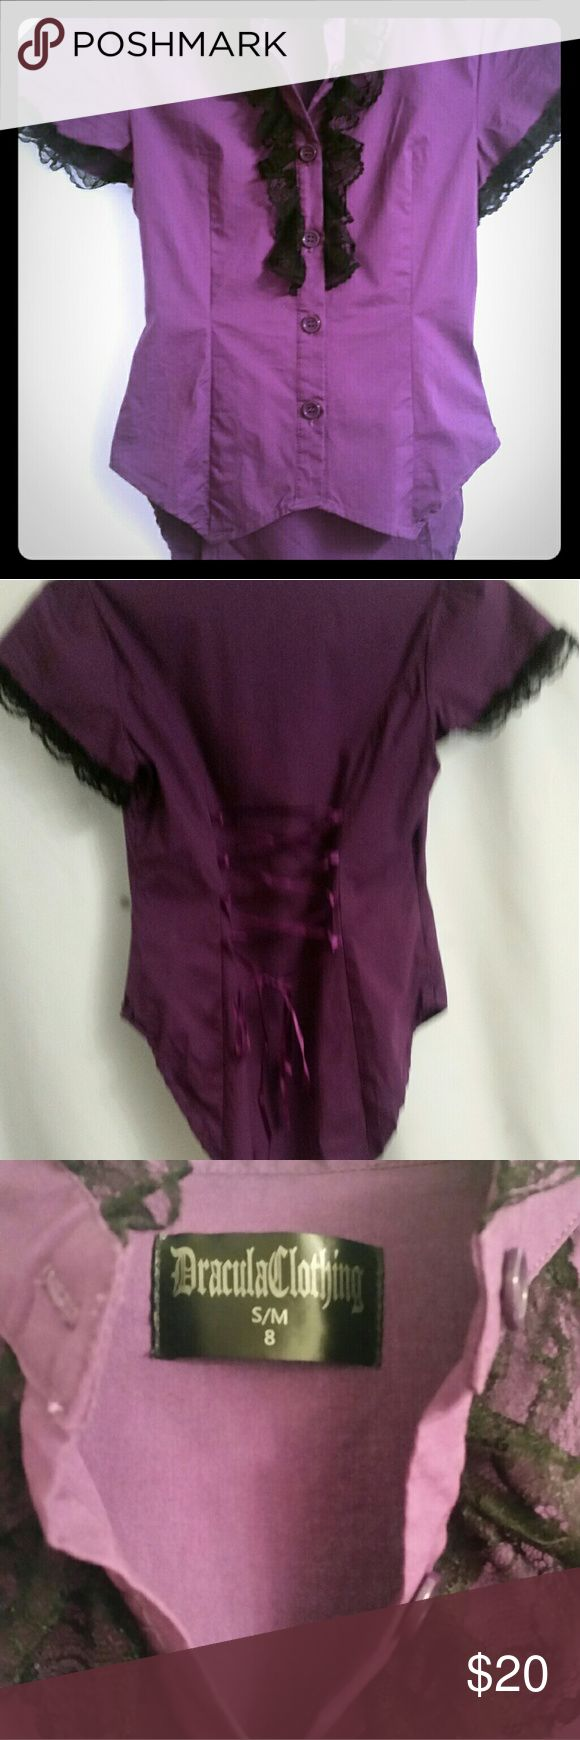 Purple corset laced blouse Purple short sleeve with black lace ruffle detail. Back is laced up corset style with slightly longer back/tail. European cut so it says small/mediuim. I would say it fits like a 4. Dracula clothing Tops Button Down Shirts